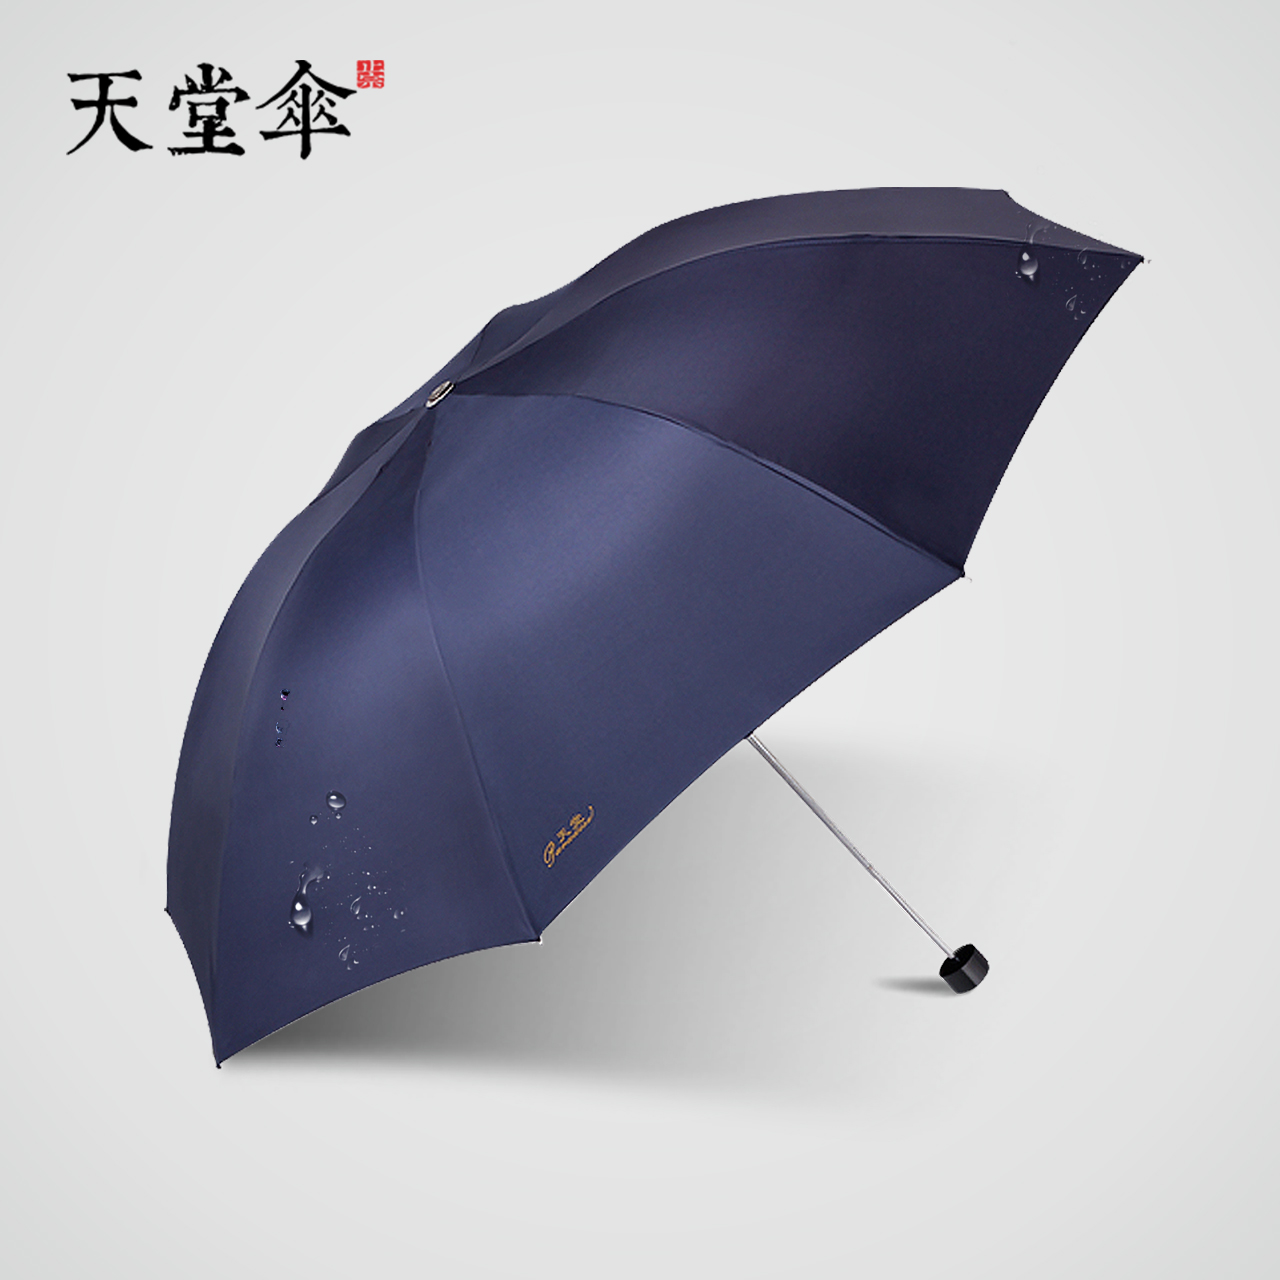 Heaven umbrella umbrella solid business umbrella umbrella oversized umbrella folding portable water repellency a drying umbrella